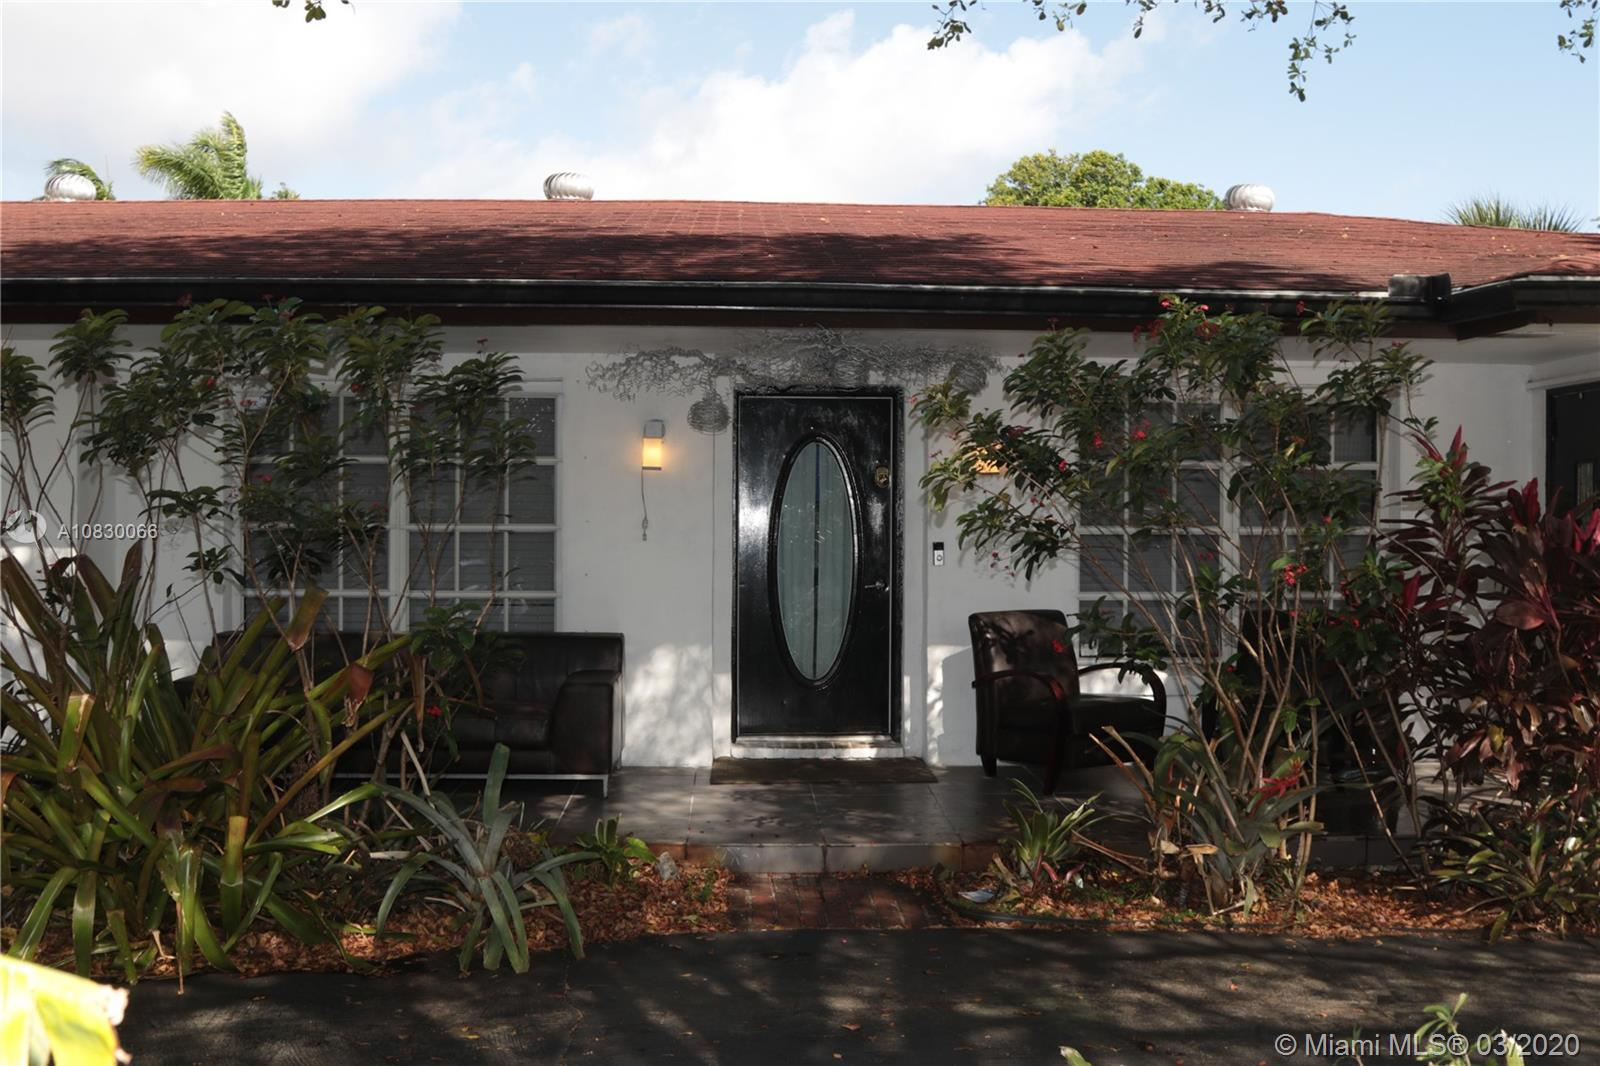 "What an opportunity! This large home, on a corner lot, is conveniently located on a quiet street in Wilton Manors.  Featuring a cook's dream kitchen, with top-of-the-line appliances (36"" induction cooktop with hood, double convection oven, enormous refrigerator/freezer), quartz countertops and 24x24 tile."